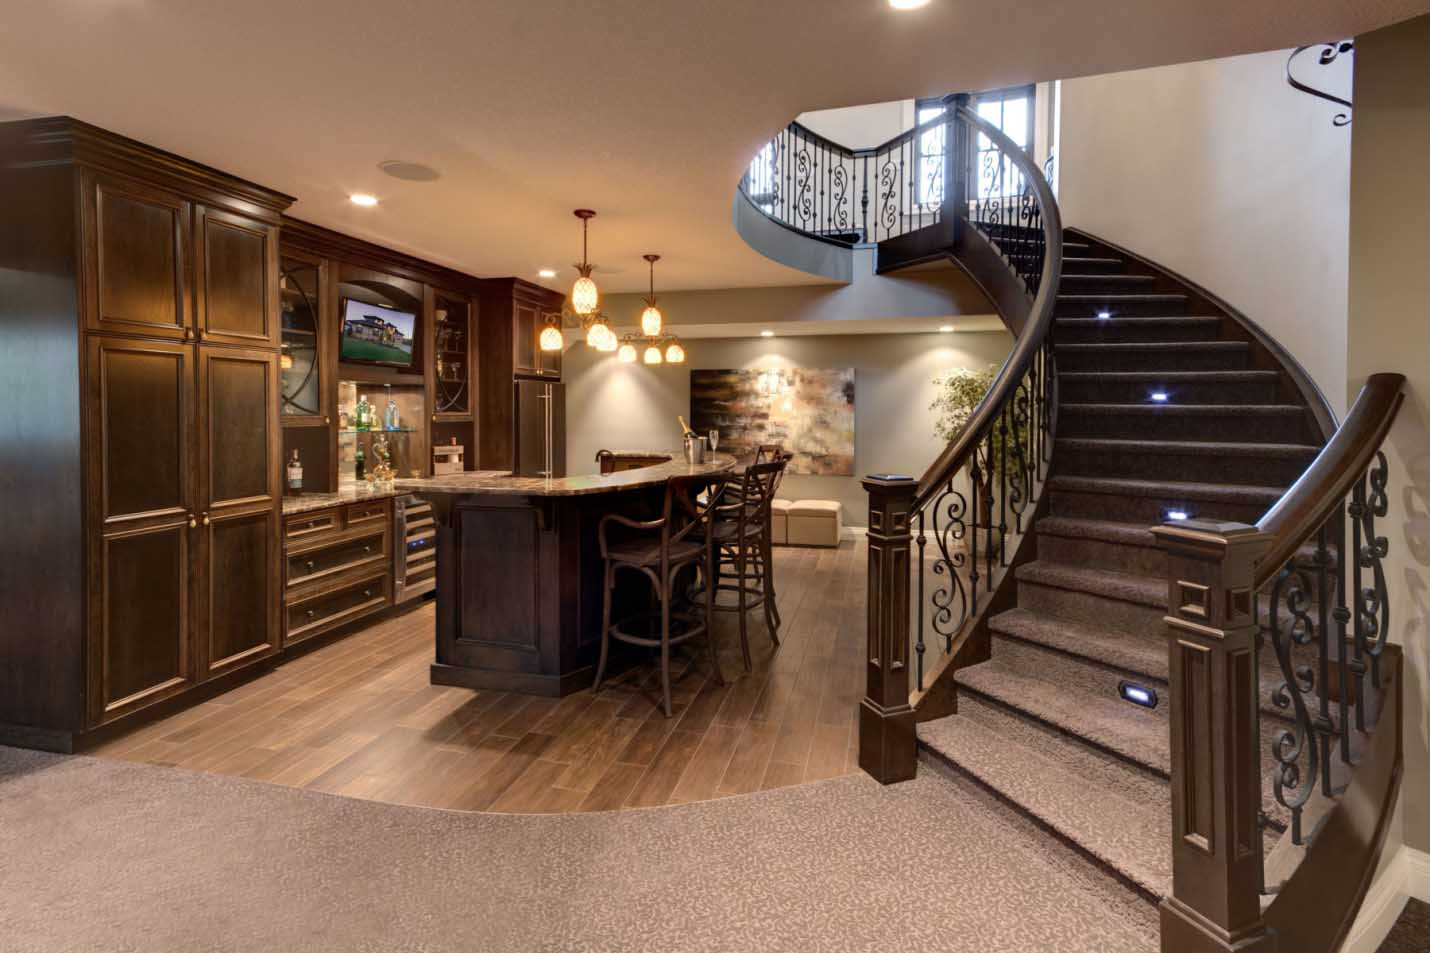 Basement Renovation Toronto, Basement Renovation Contractors